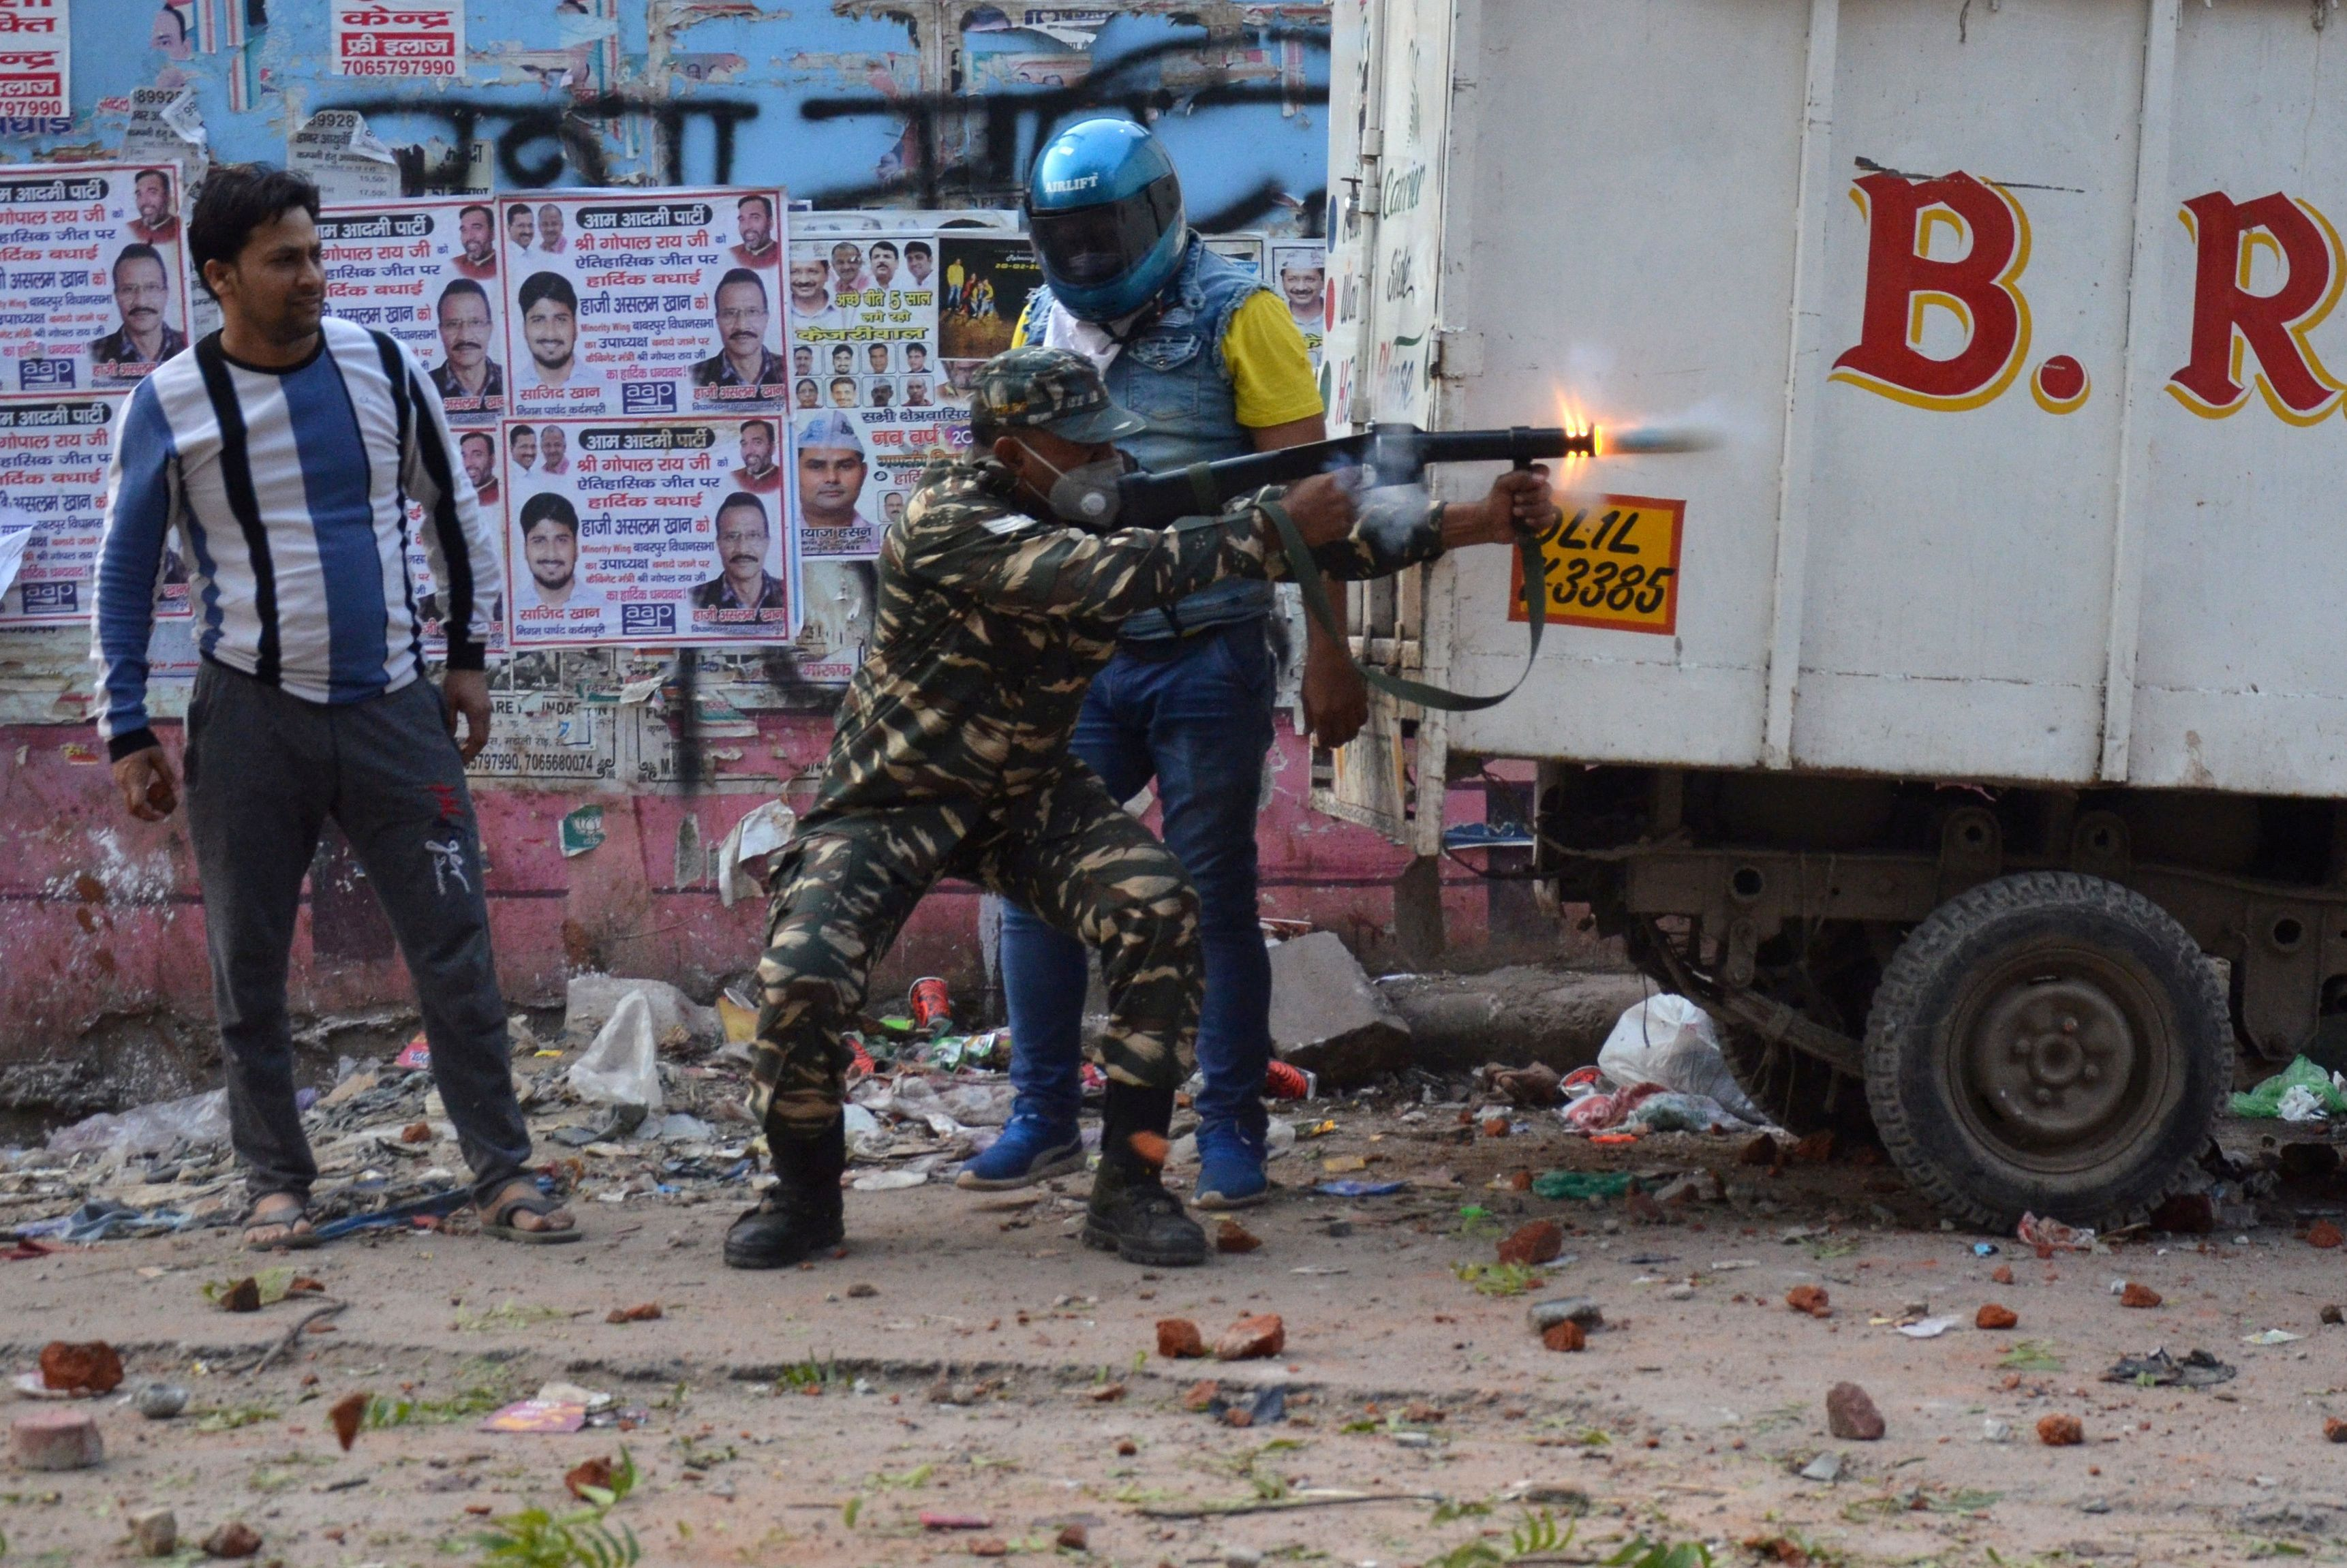 What We're Watching: Mob violence in India, a US-China tit-for-tat, and Africa's unlikely jihadist bedfellows